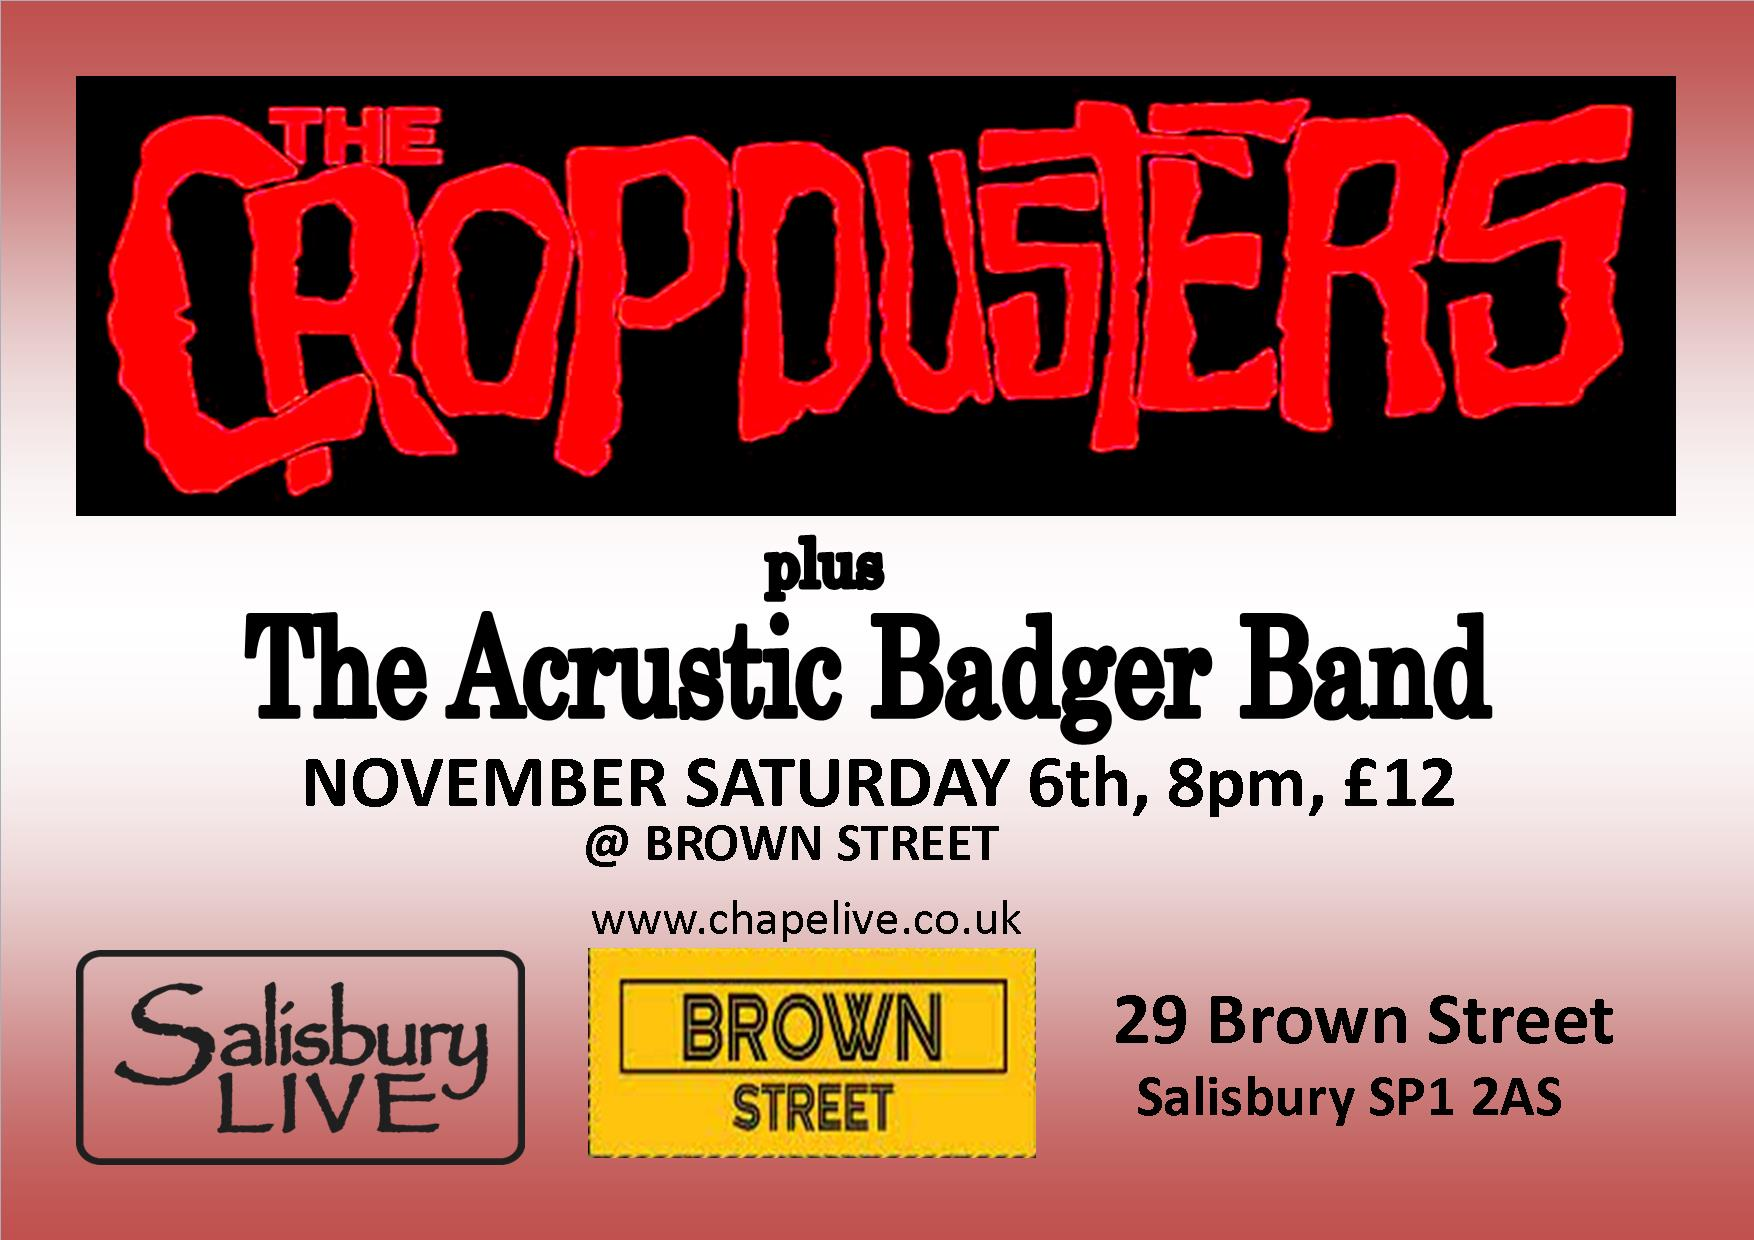 The Cropdusters + The Acrustic Badger Band